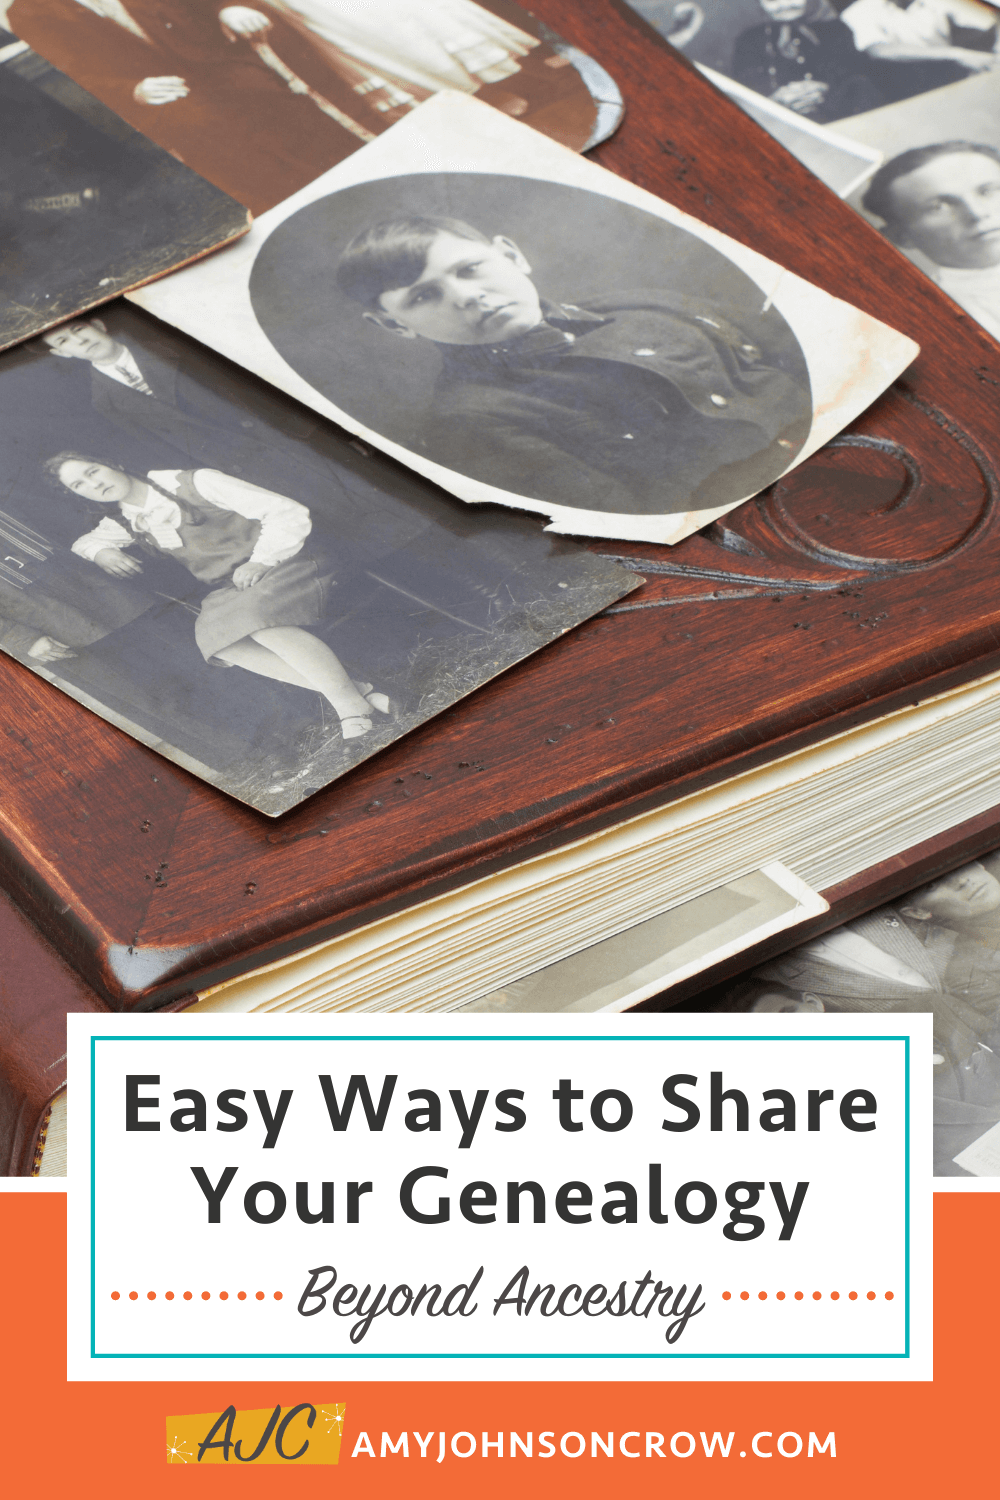 photo album with title easy ways to share your genealogy beyond ancestry